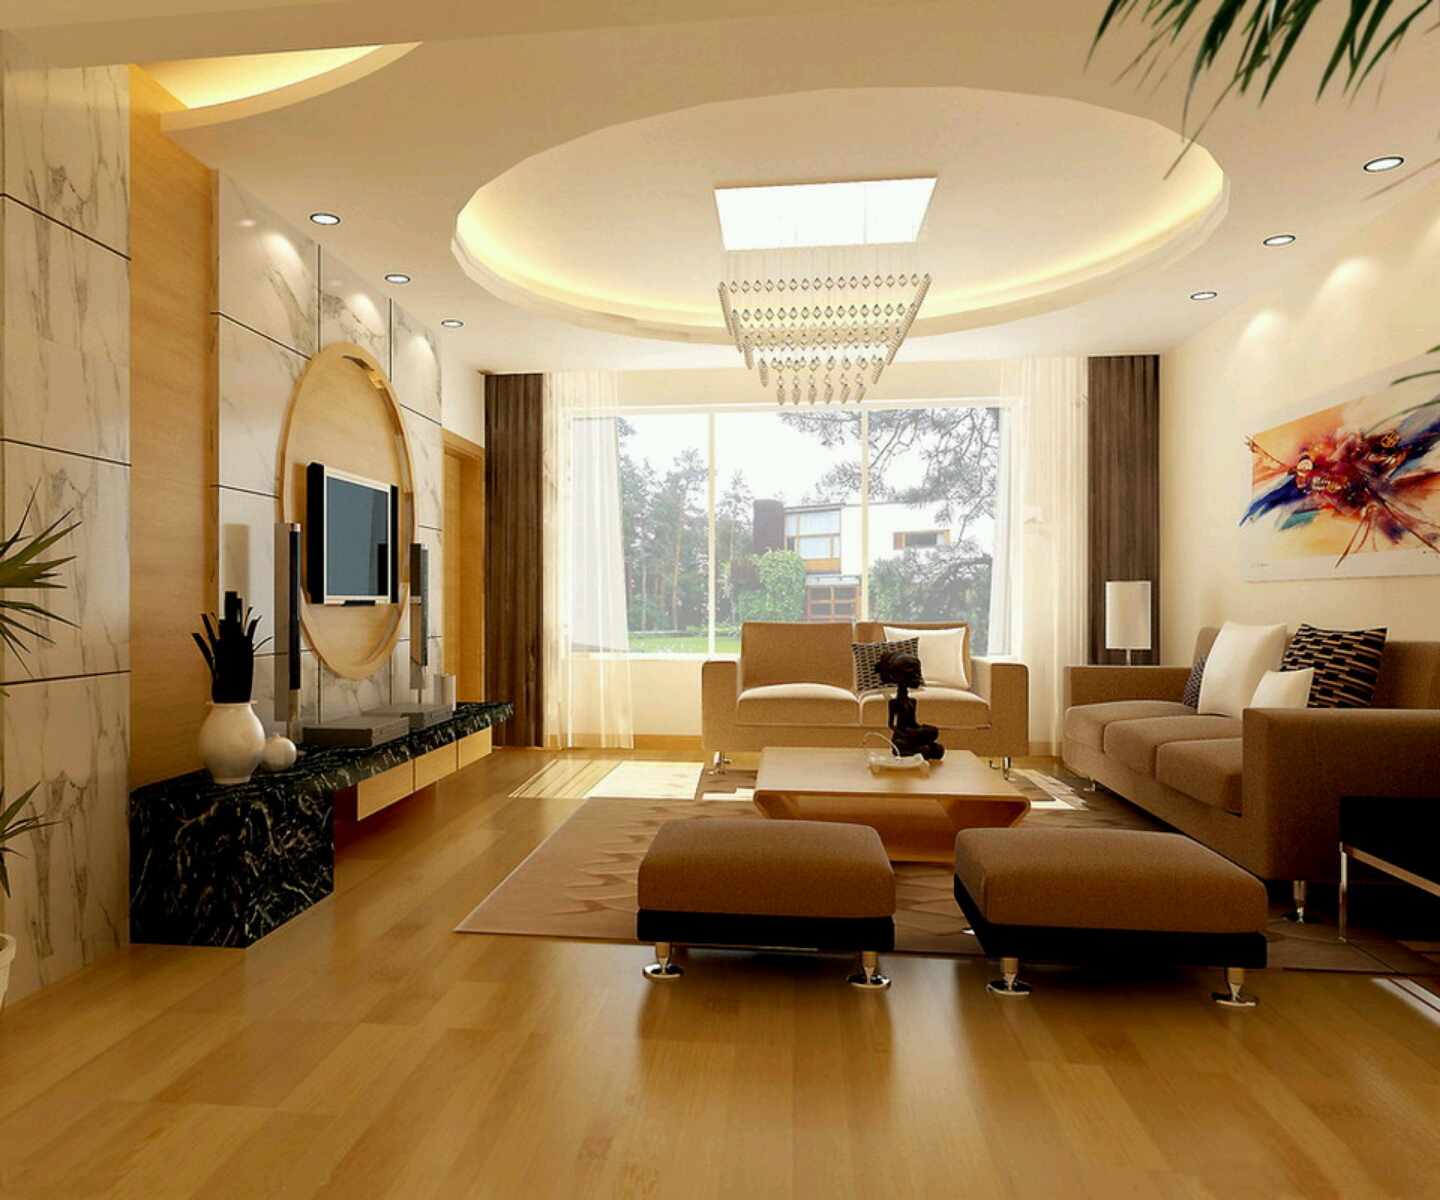 Modern interior decoration living rooms ceiling designs for New home design ideas